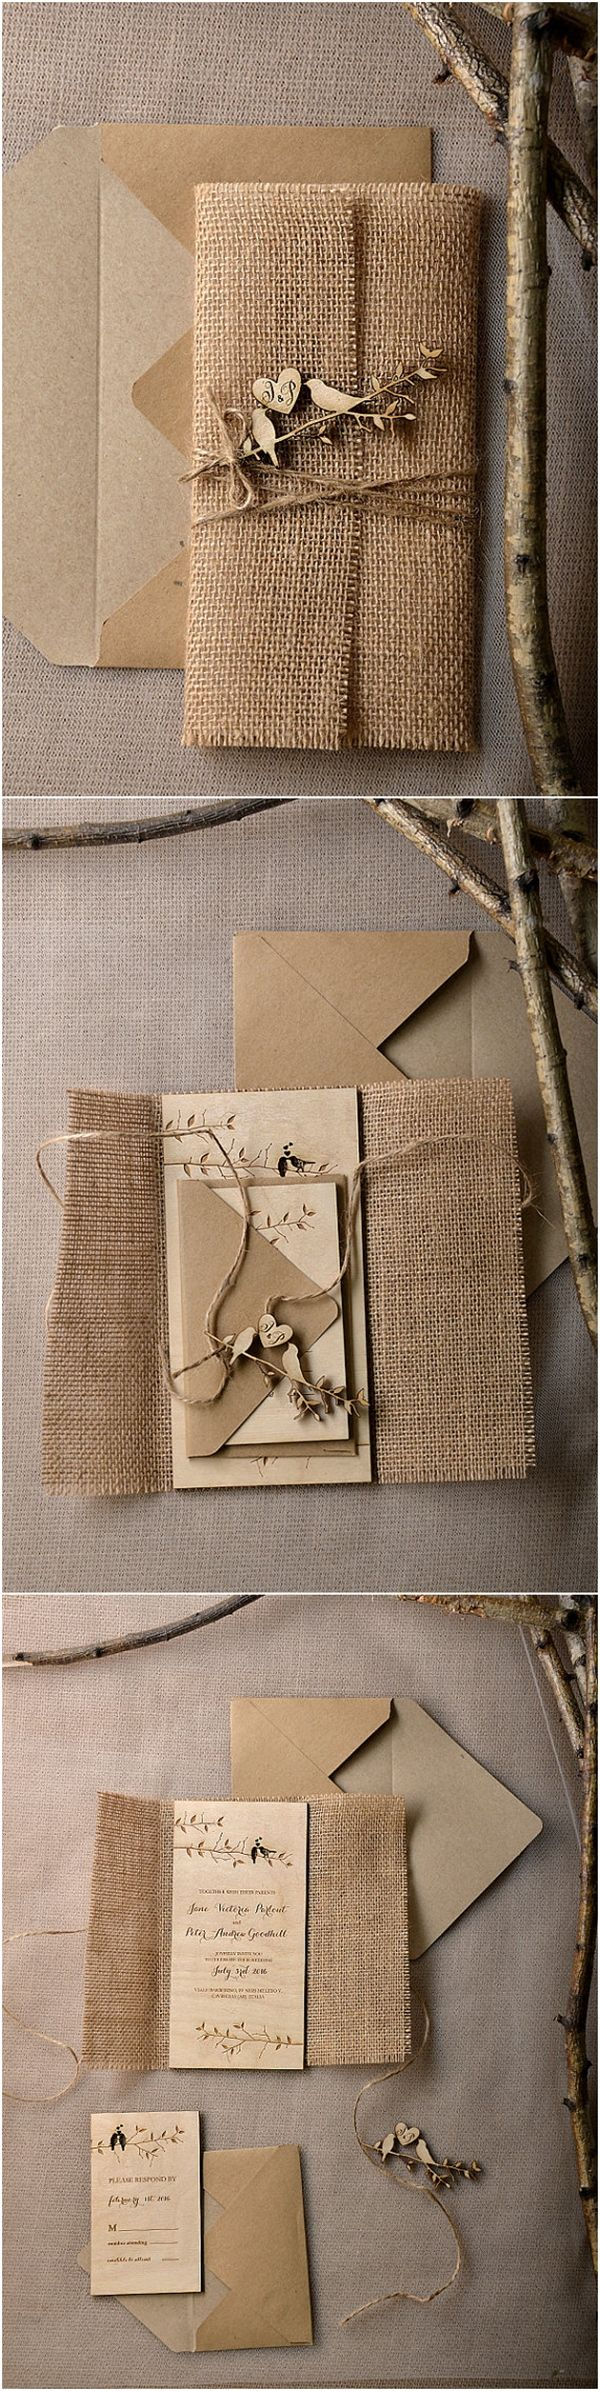 ideas for country wedding invitations%0A View and save ideas about Eco Burlap Rustic Country Laser cut Wood Wedding  Invitation Suite